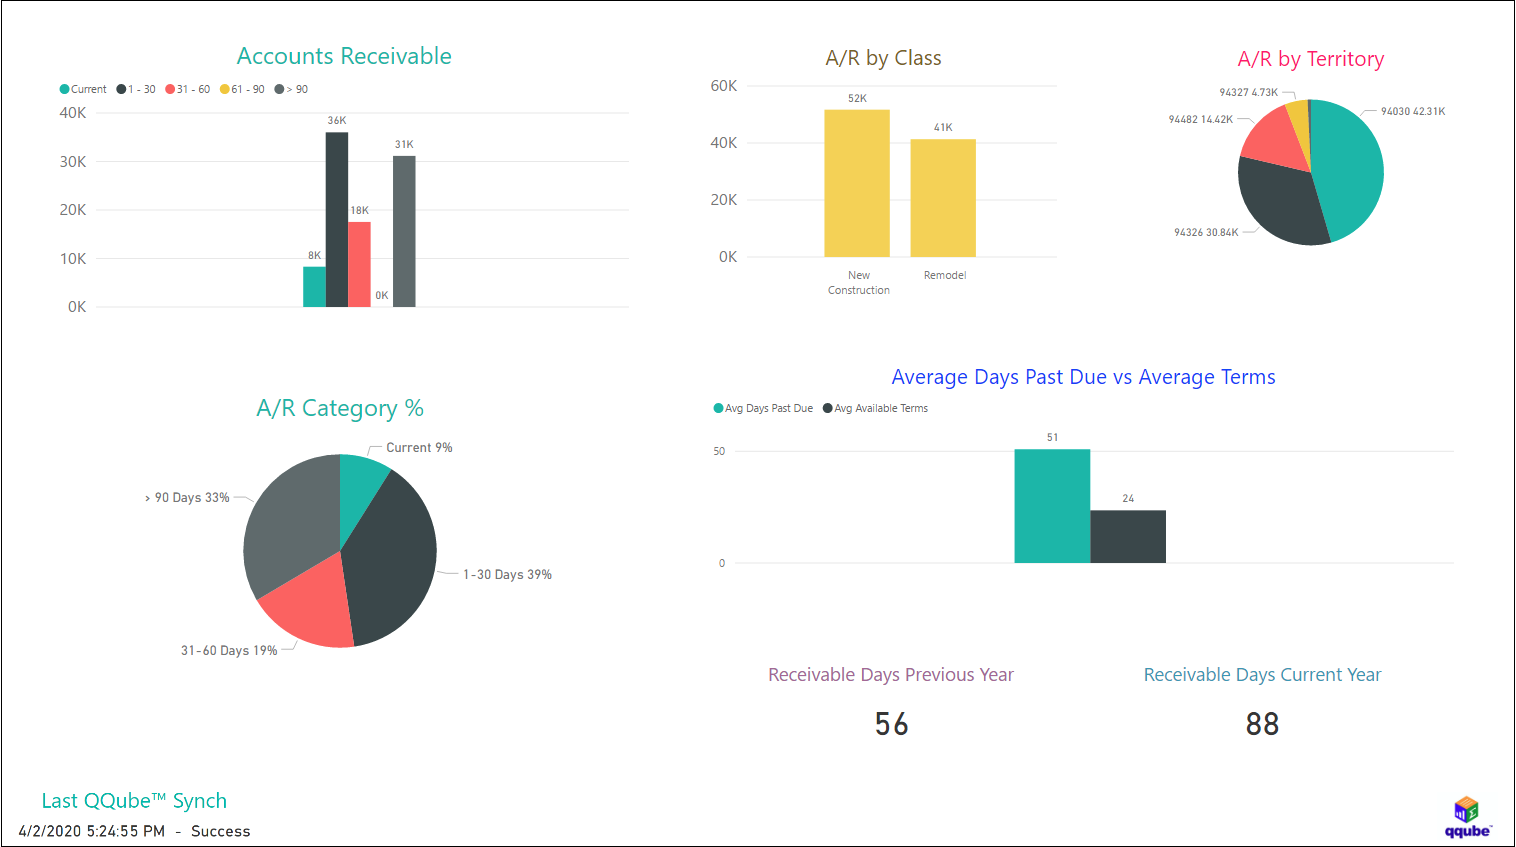 QuickBooks Accounts Receivable Dashboard using QQube with Power BI